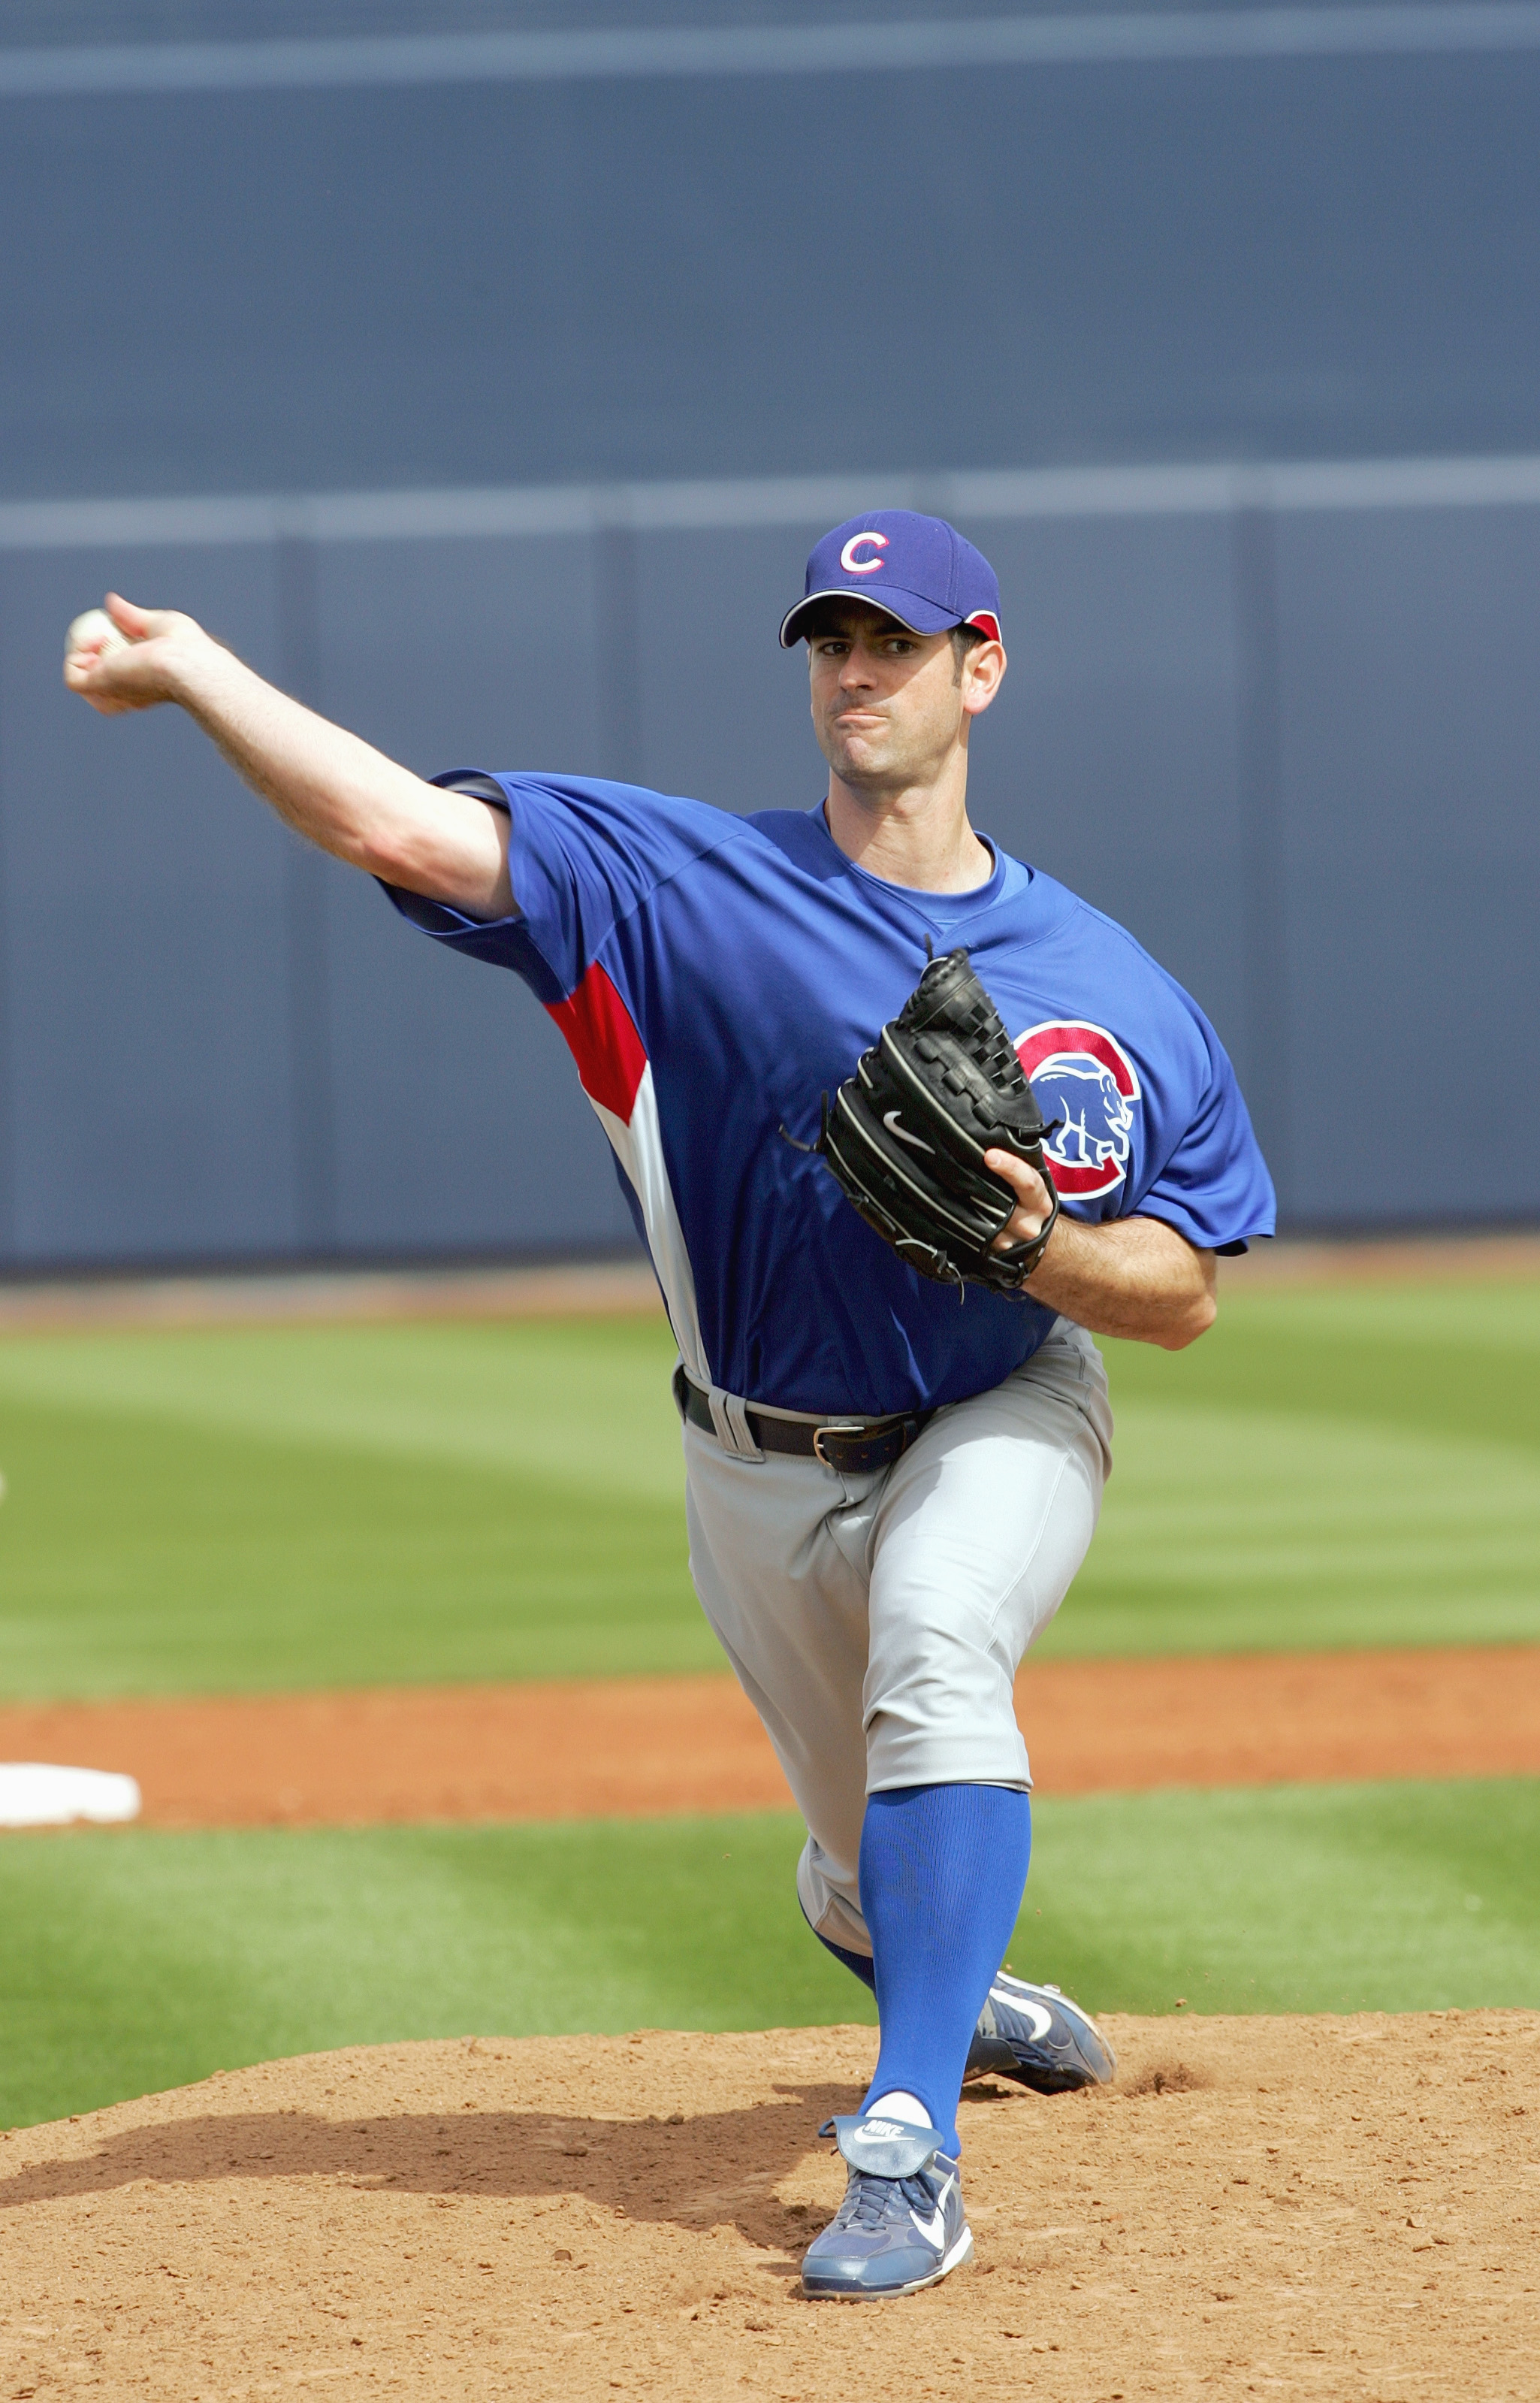 PEORIA, AZ - MARCH 5: Pitcher Mark Prior #22 of the Chicago Cubs pitches during a play against the Seattle Mariners during Spring Training at Peoria Sports Complex March 5, 2007 in Peoria, Arizona. (Photo by Stephen Dunn/Getty Images)